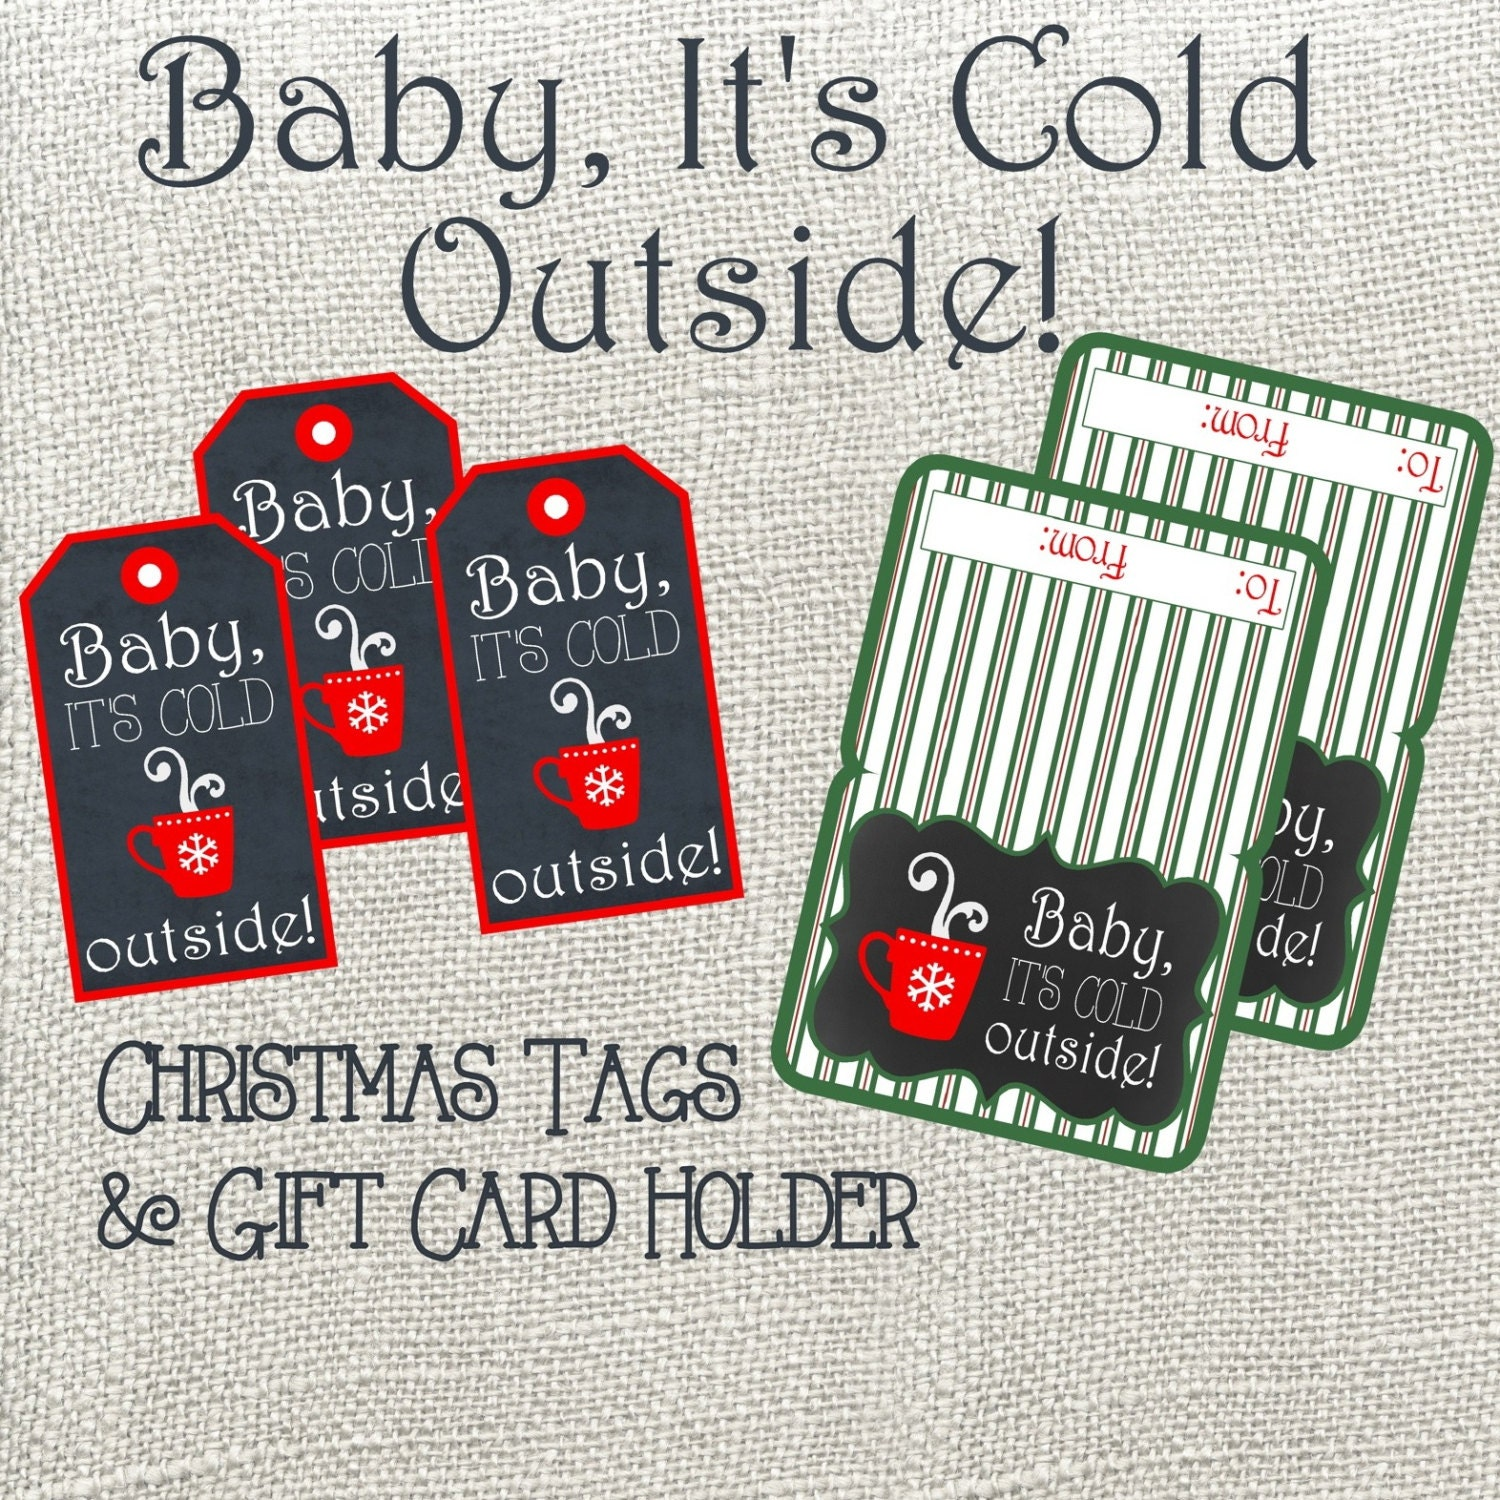 Baby It's Cold Outside Christmas Tag And Gift Card Holder